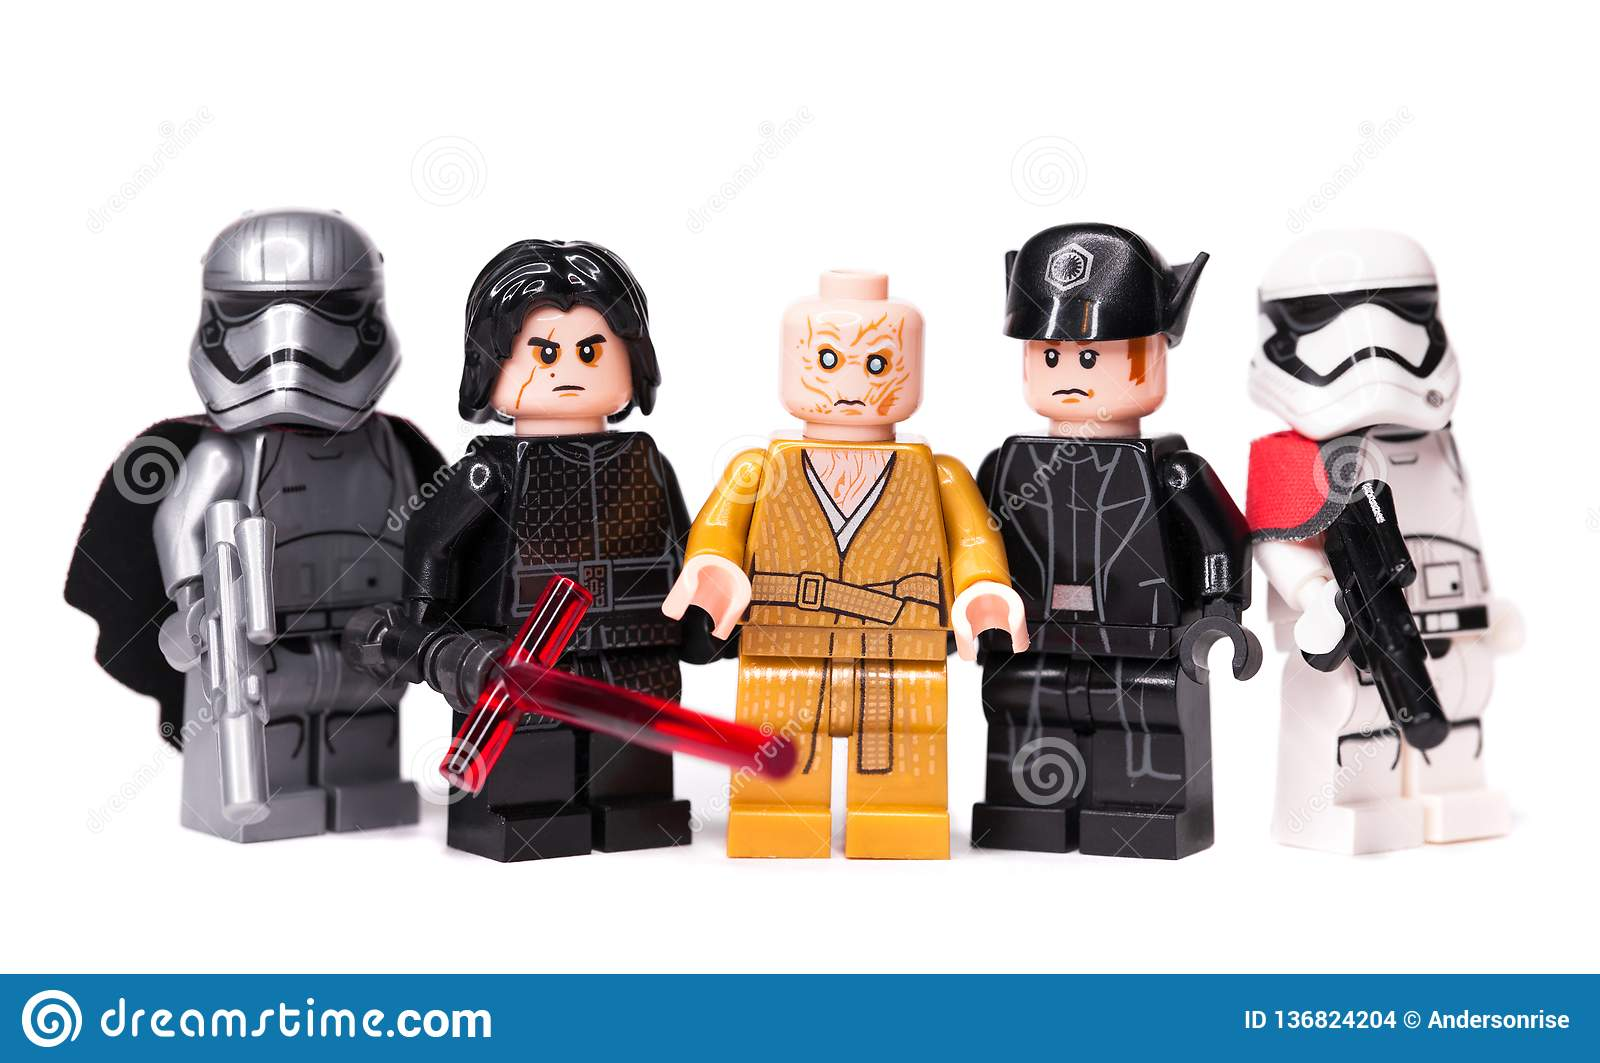 Lego star wars minifigures star wars characters episode 8 kylo ren phasma snoke hux